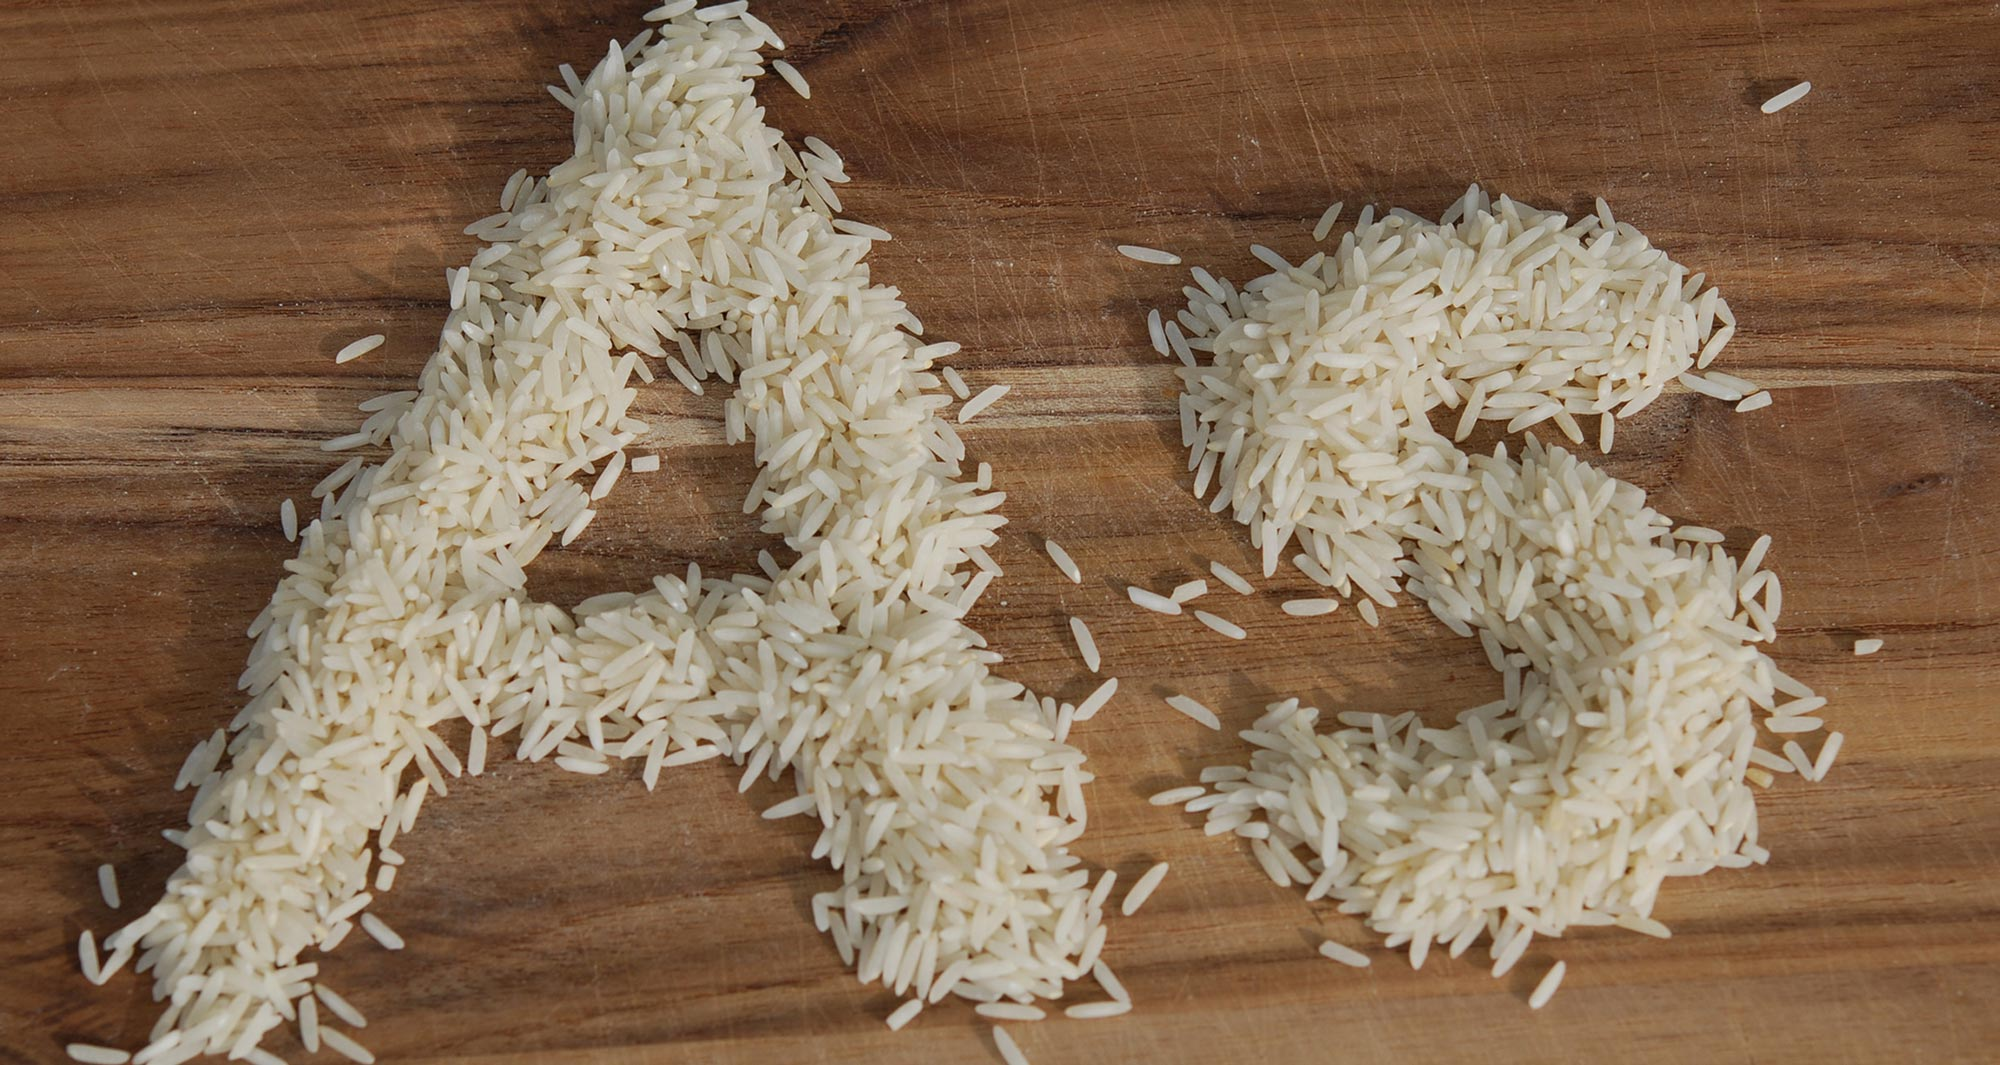 Is arsenic in rice?